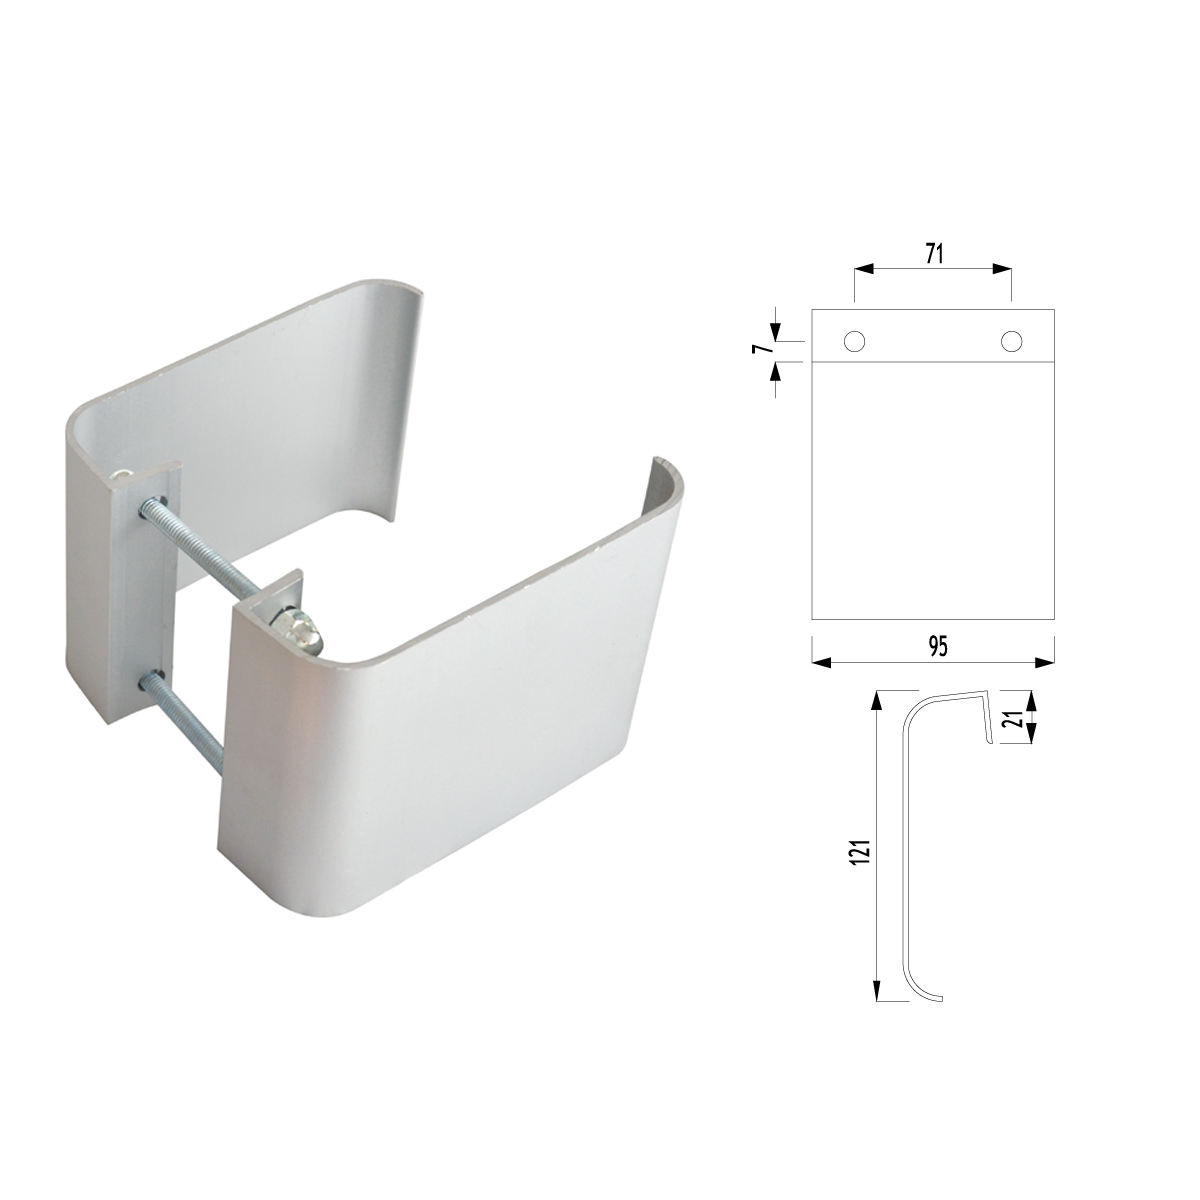 F01 - 520 KARE KOL DOOR PULL HANDLE SQUARE TYPE